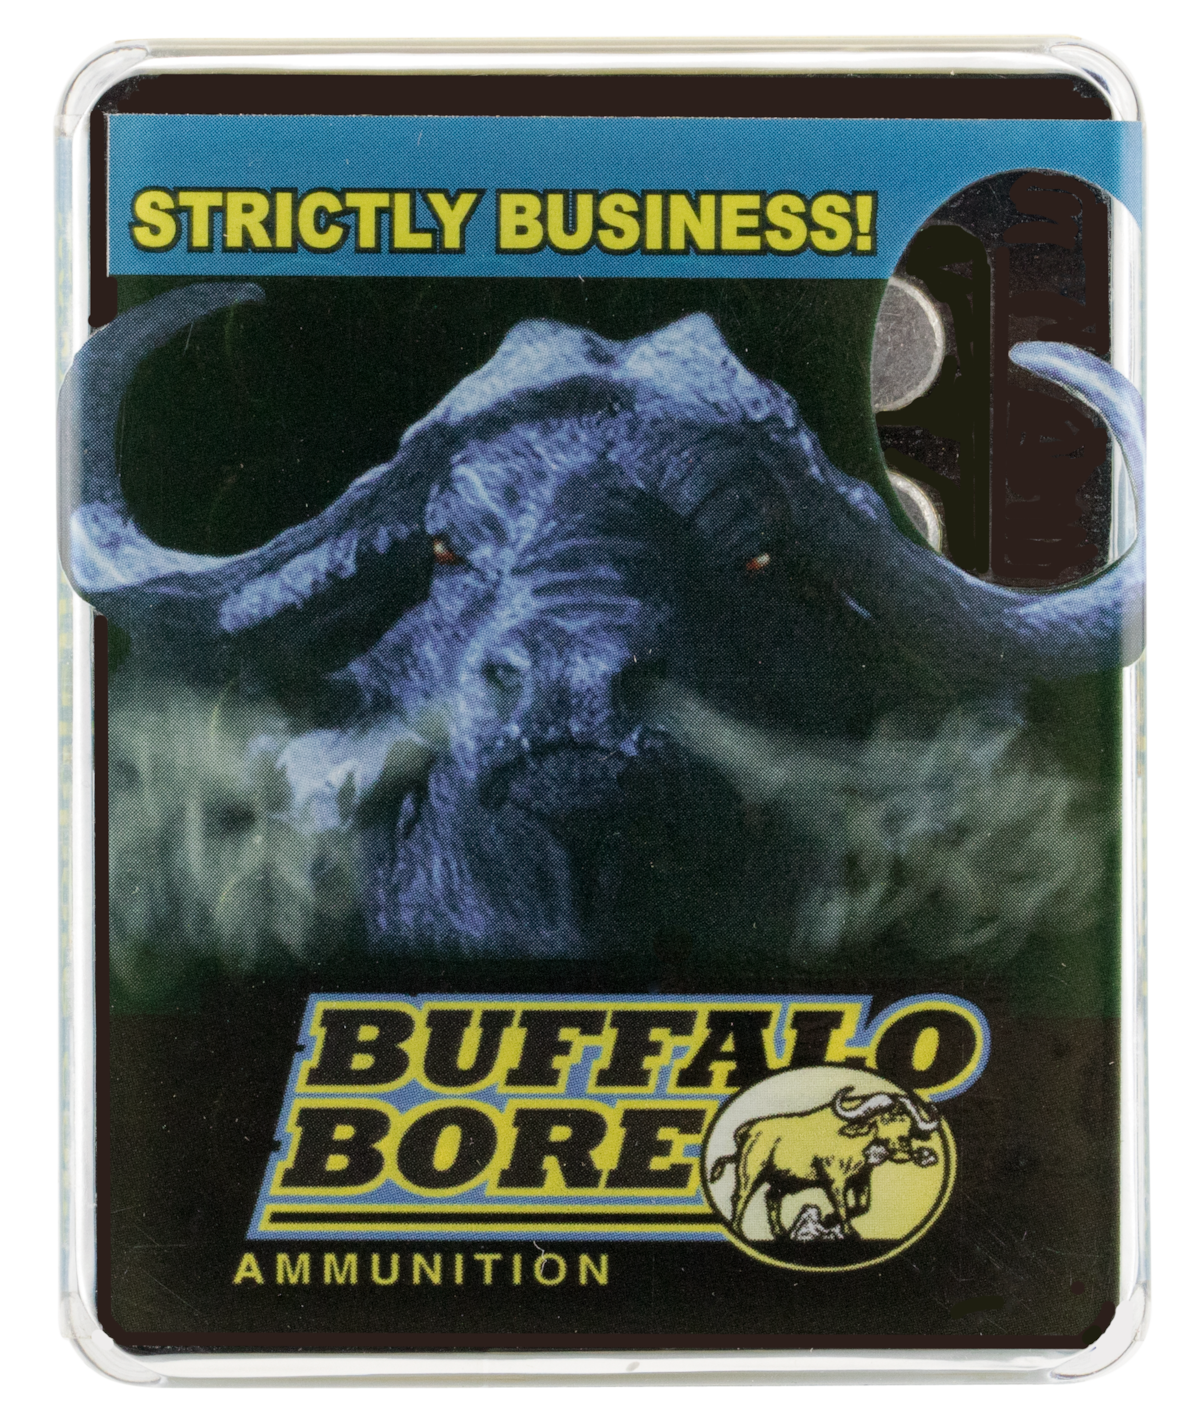 BUFFALO BORE OUTDOORSMAN